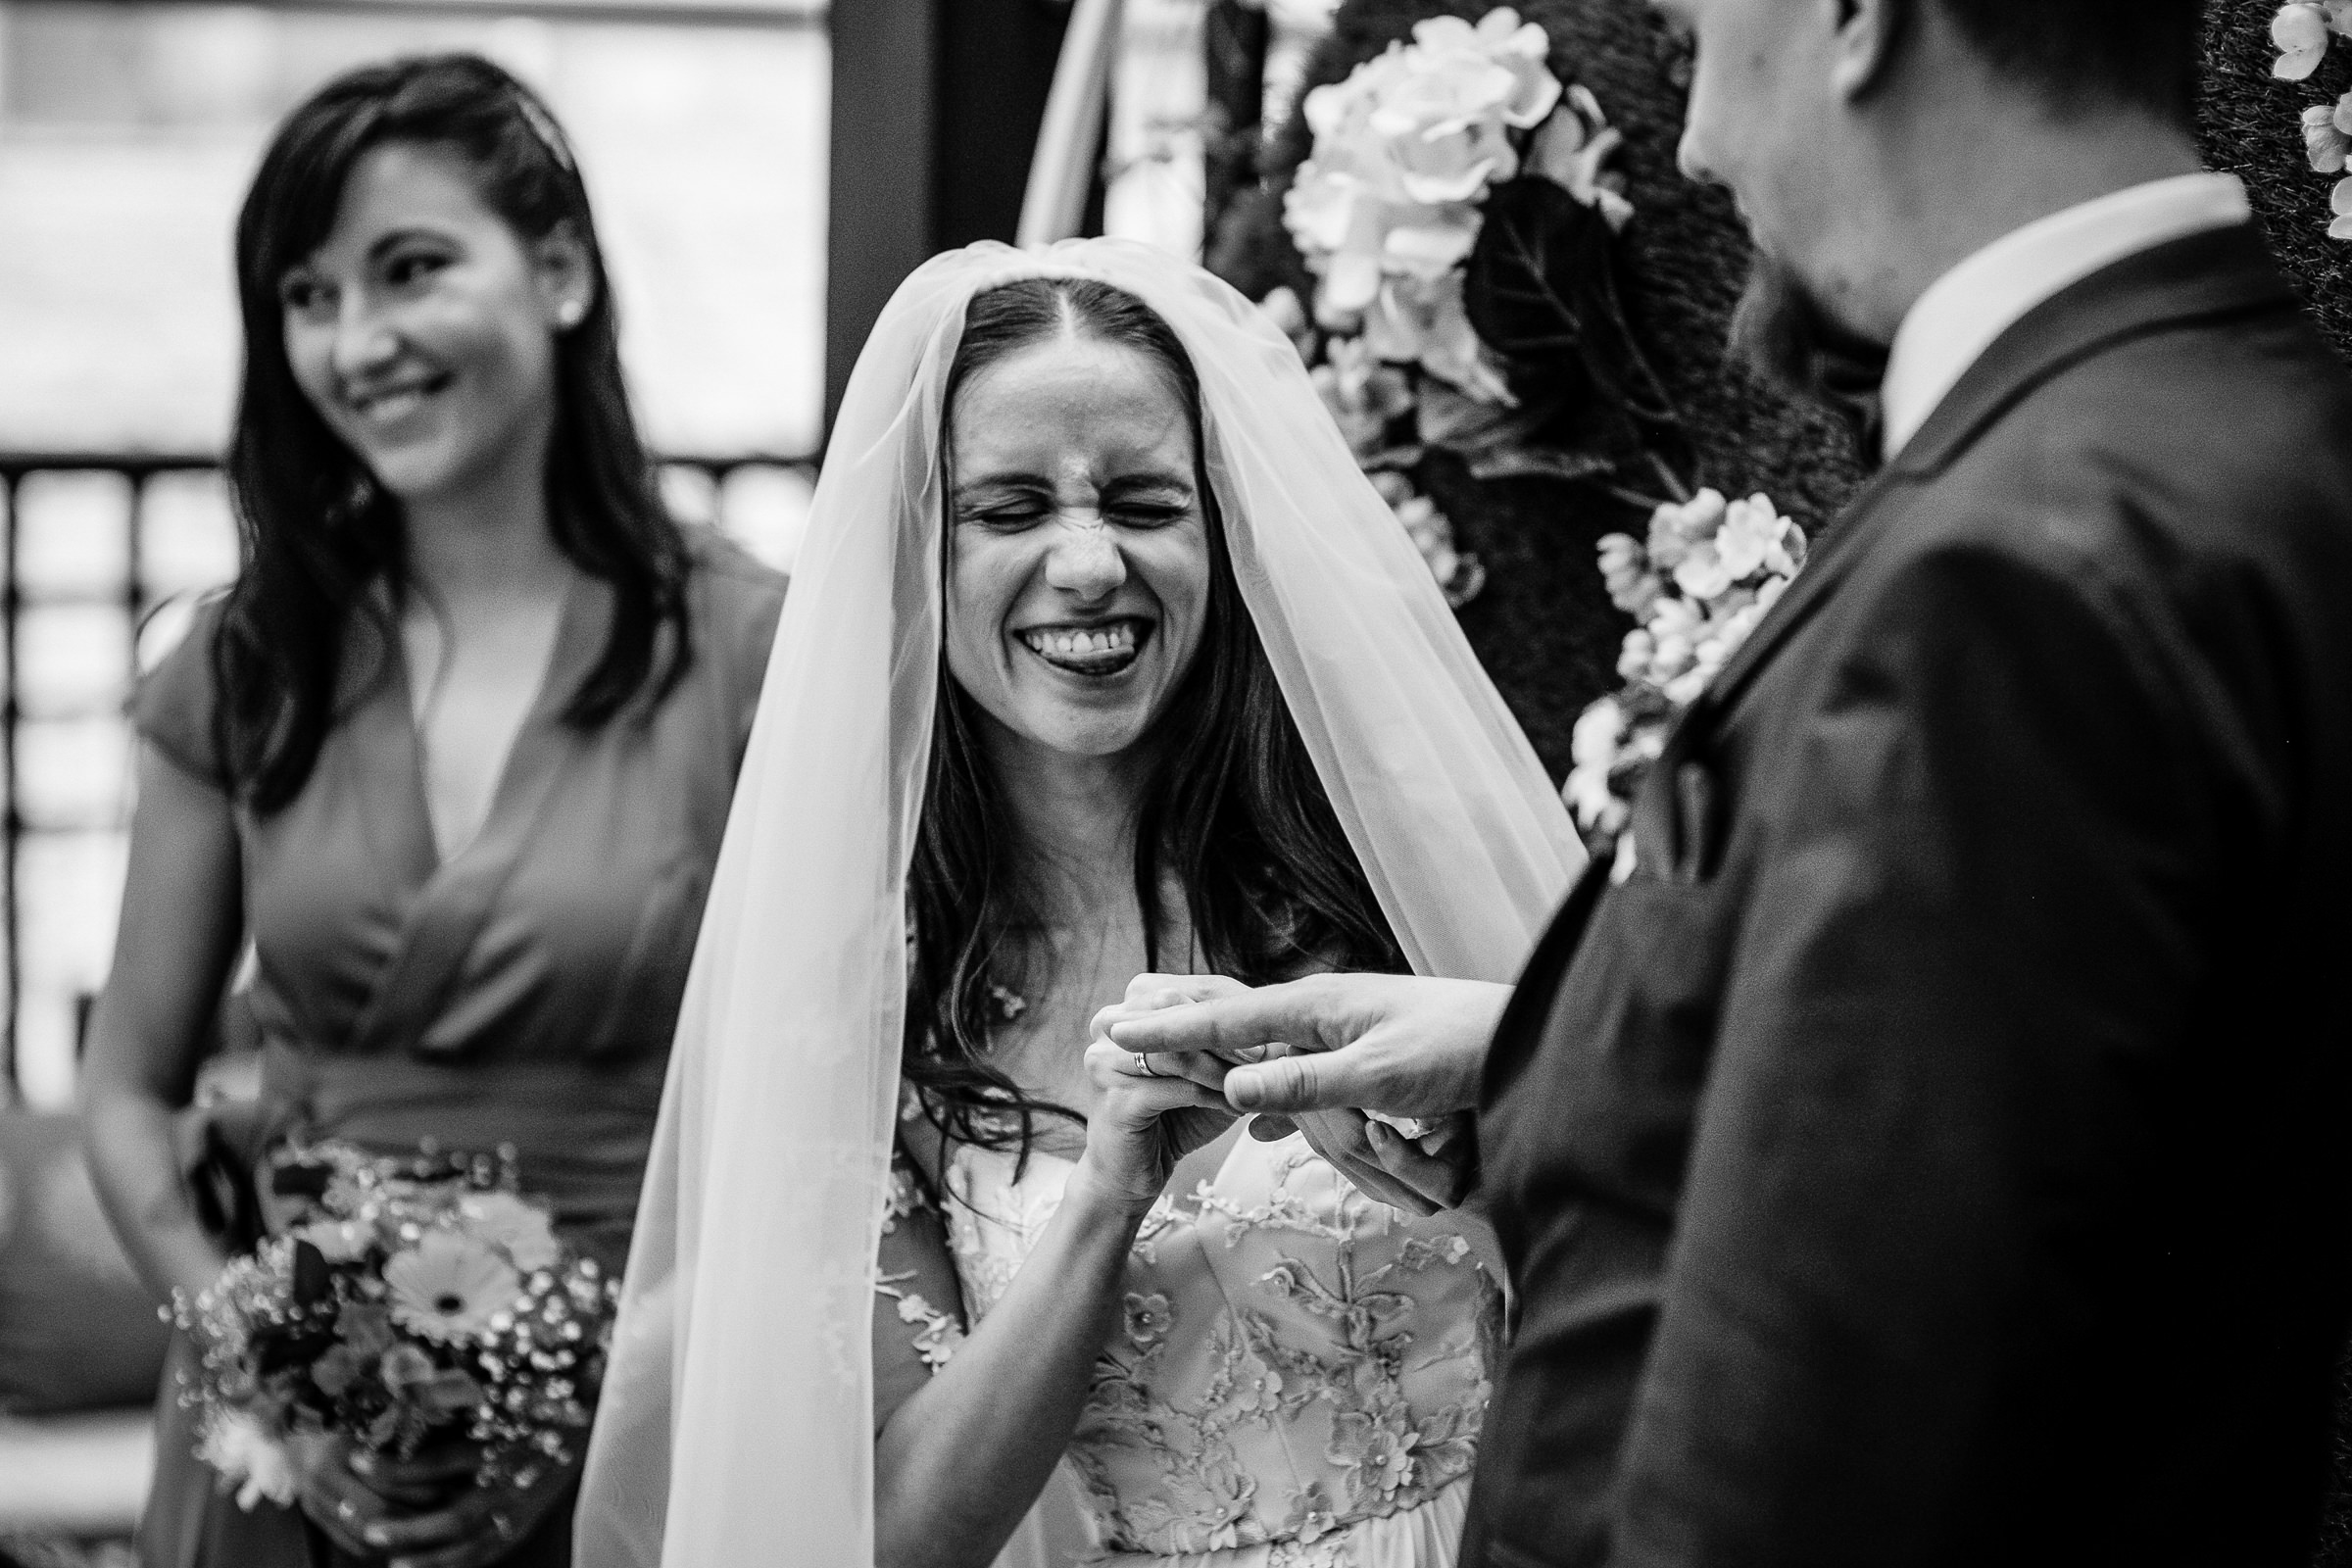 Bride makes funny face at groom during ceremony - photo by Deliysky Studio